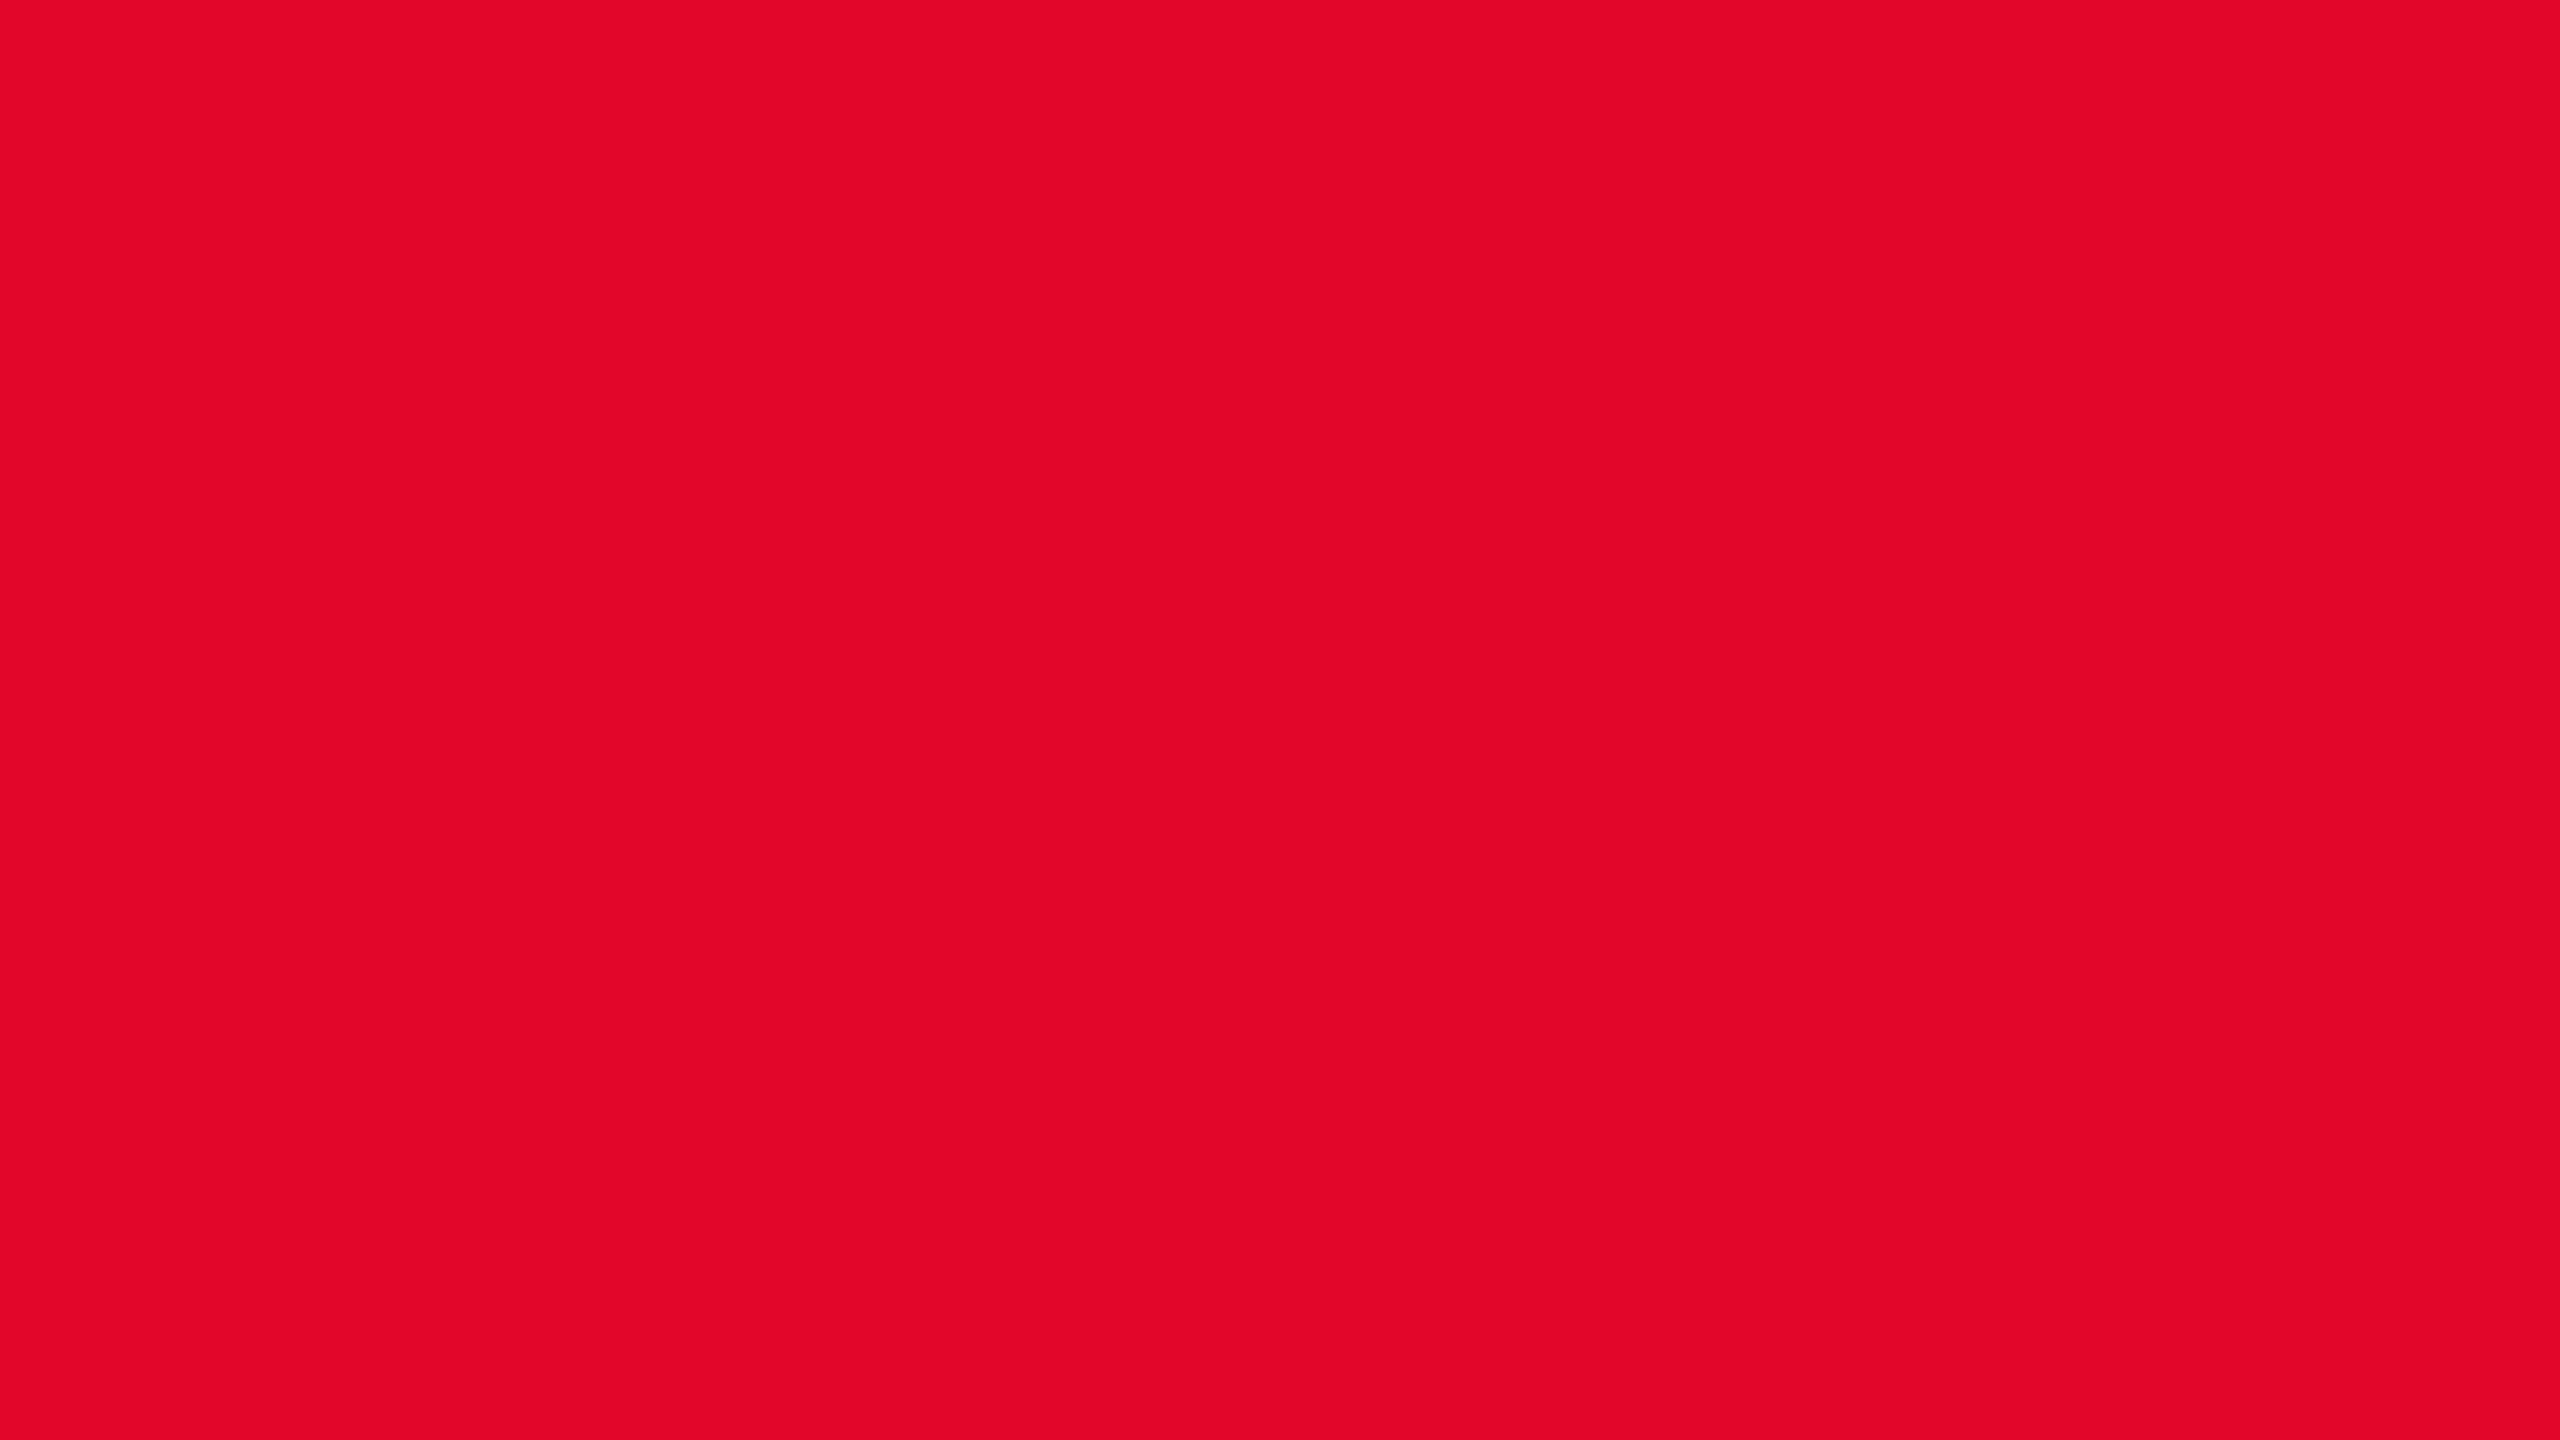 48d3bb82f9d 2560x1440 Medium Candy Apple Red Solid Color Background